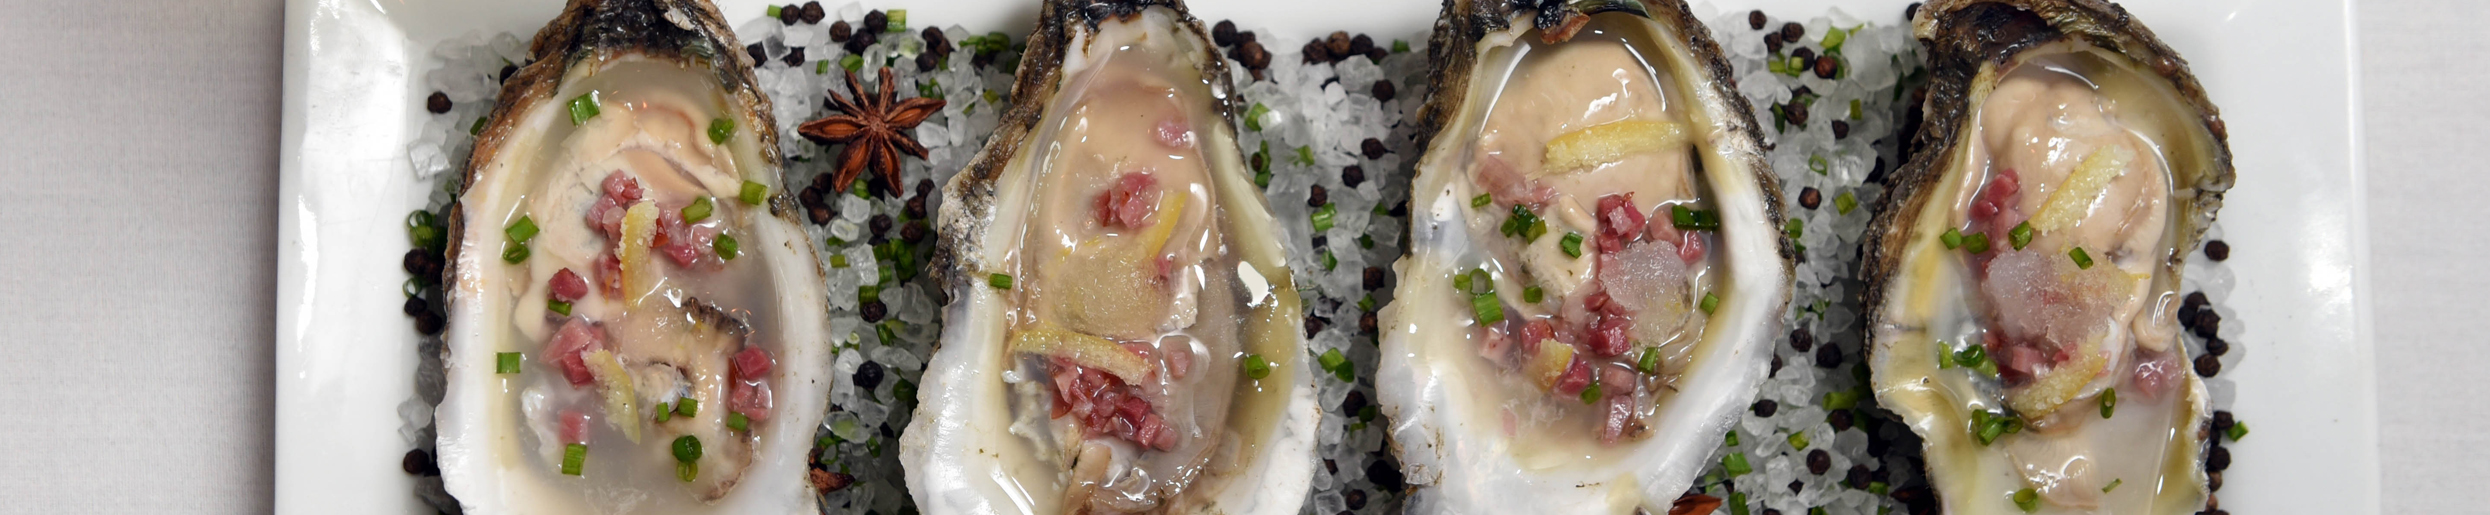 oysters-2490